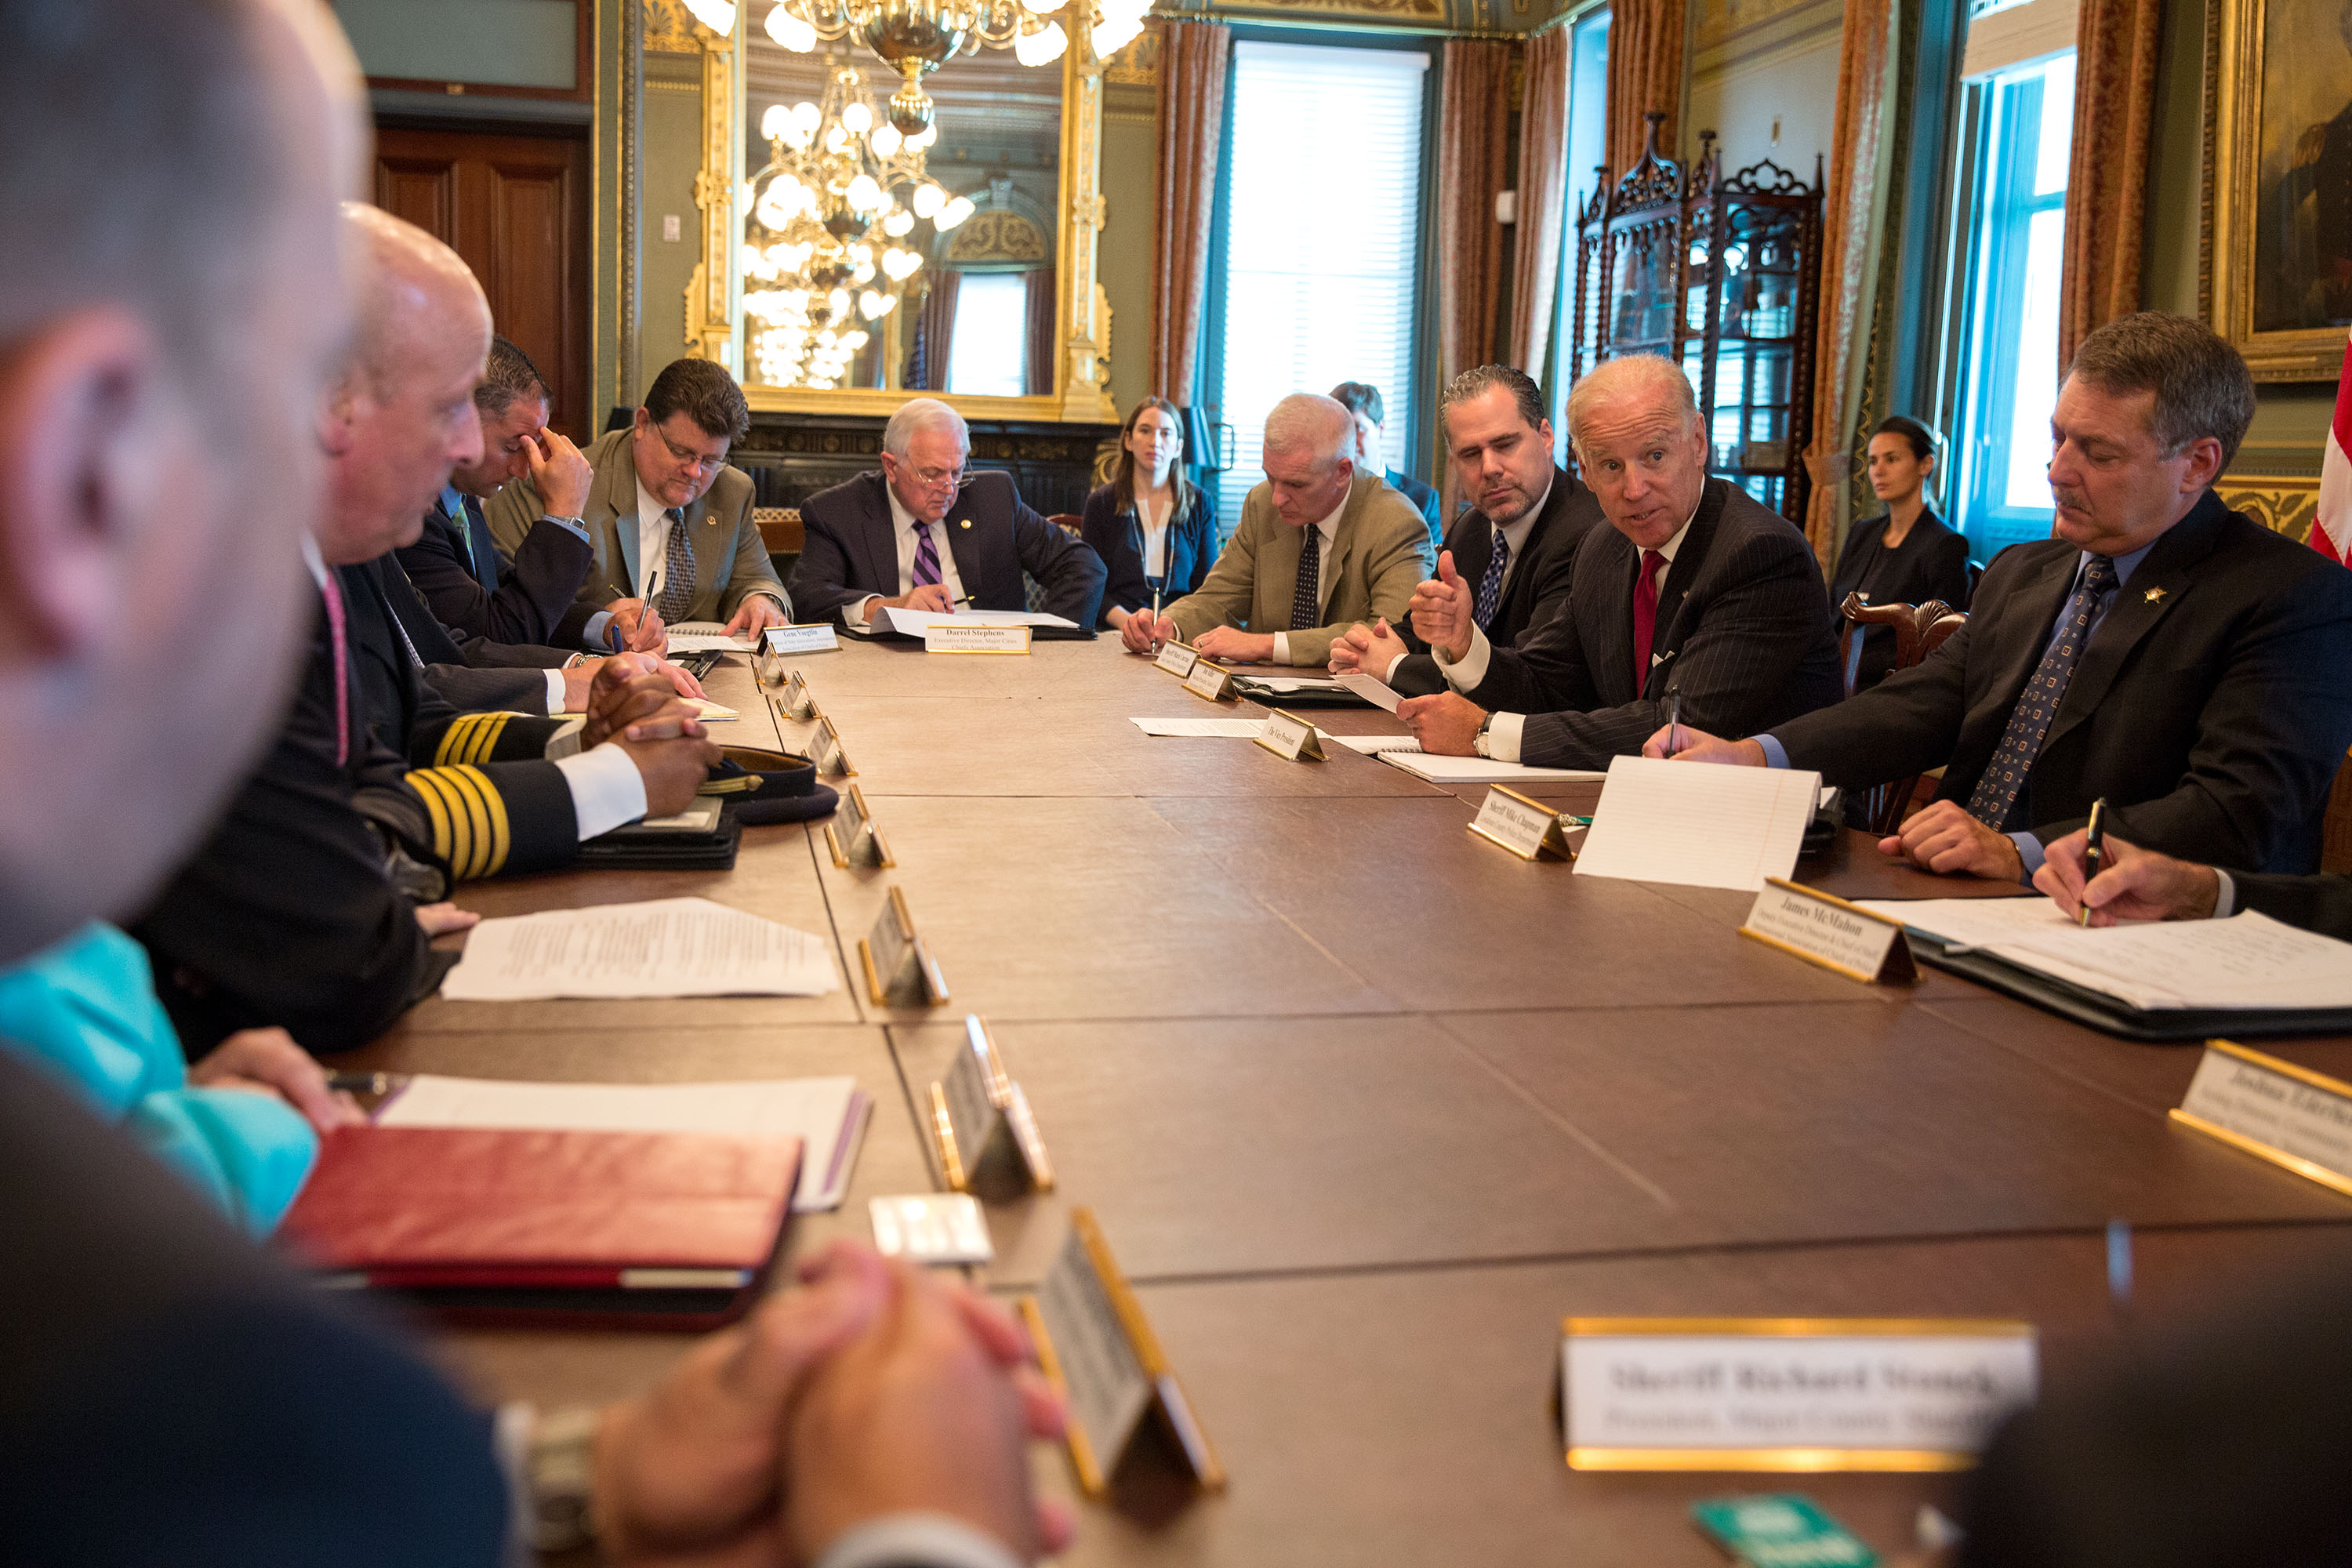 Vice President Biden Meets with Law Enforcement on Immigration Reform